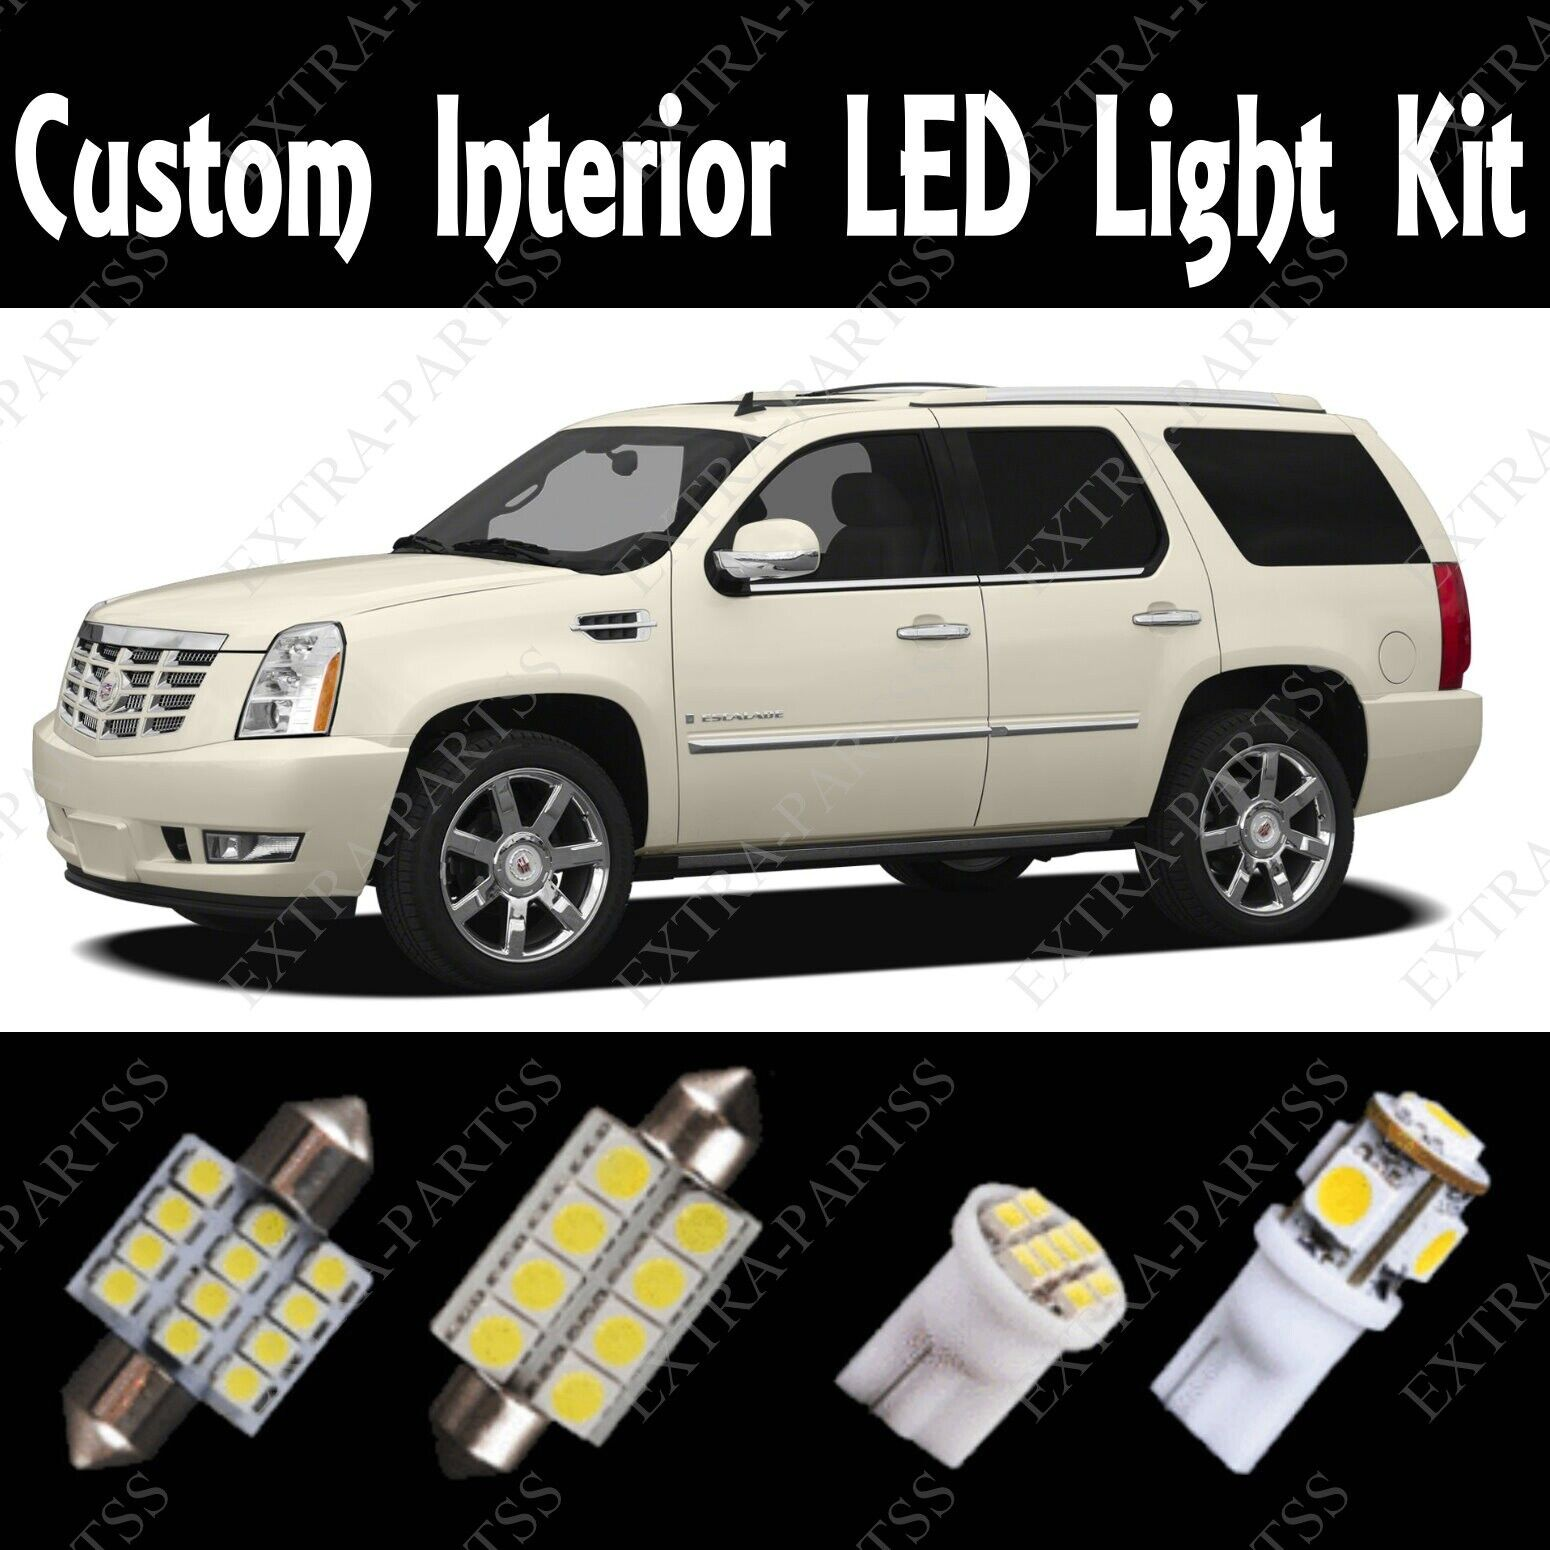 2014 Cadillac Escalade For Sale: 18 X White LED Light Bulbs Interior Package Kit 2007-2014 For Cadillac Escalade